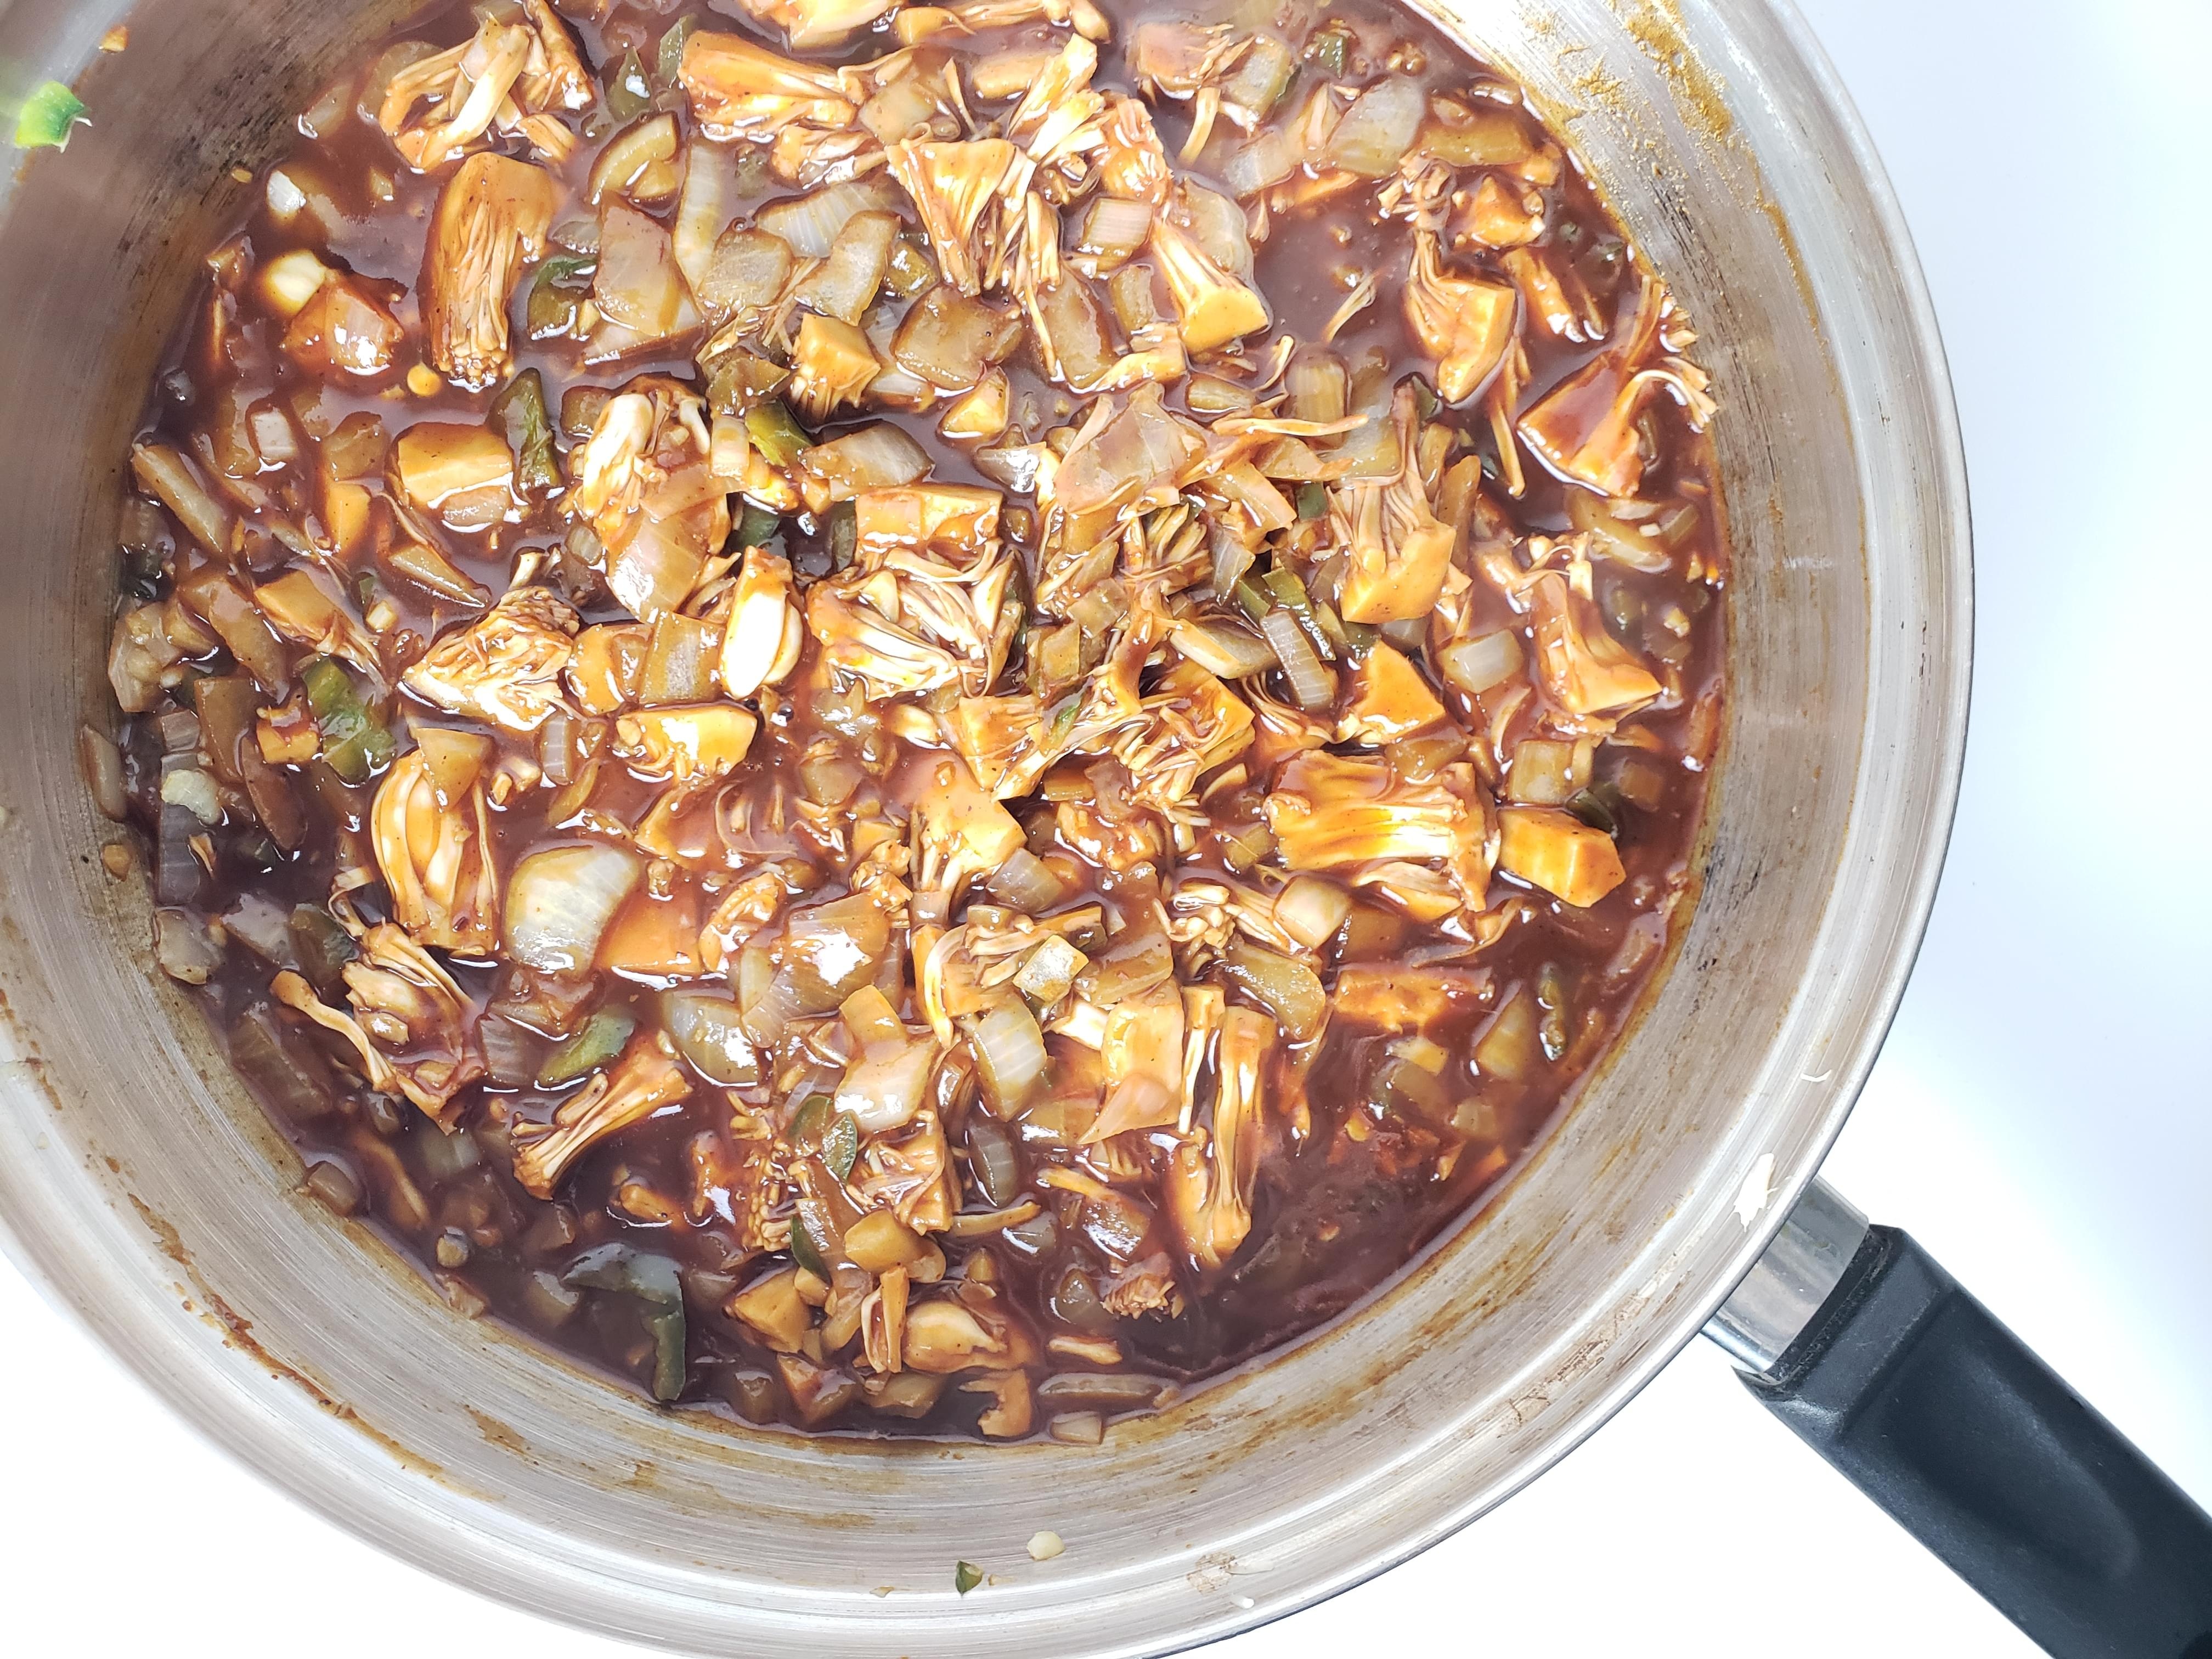 Pan full of bbq jackfruit and onions